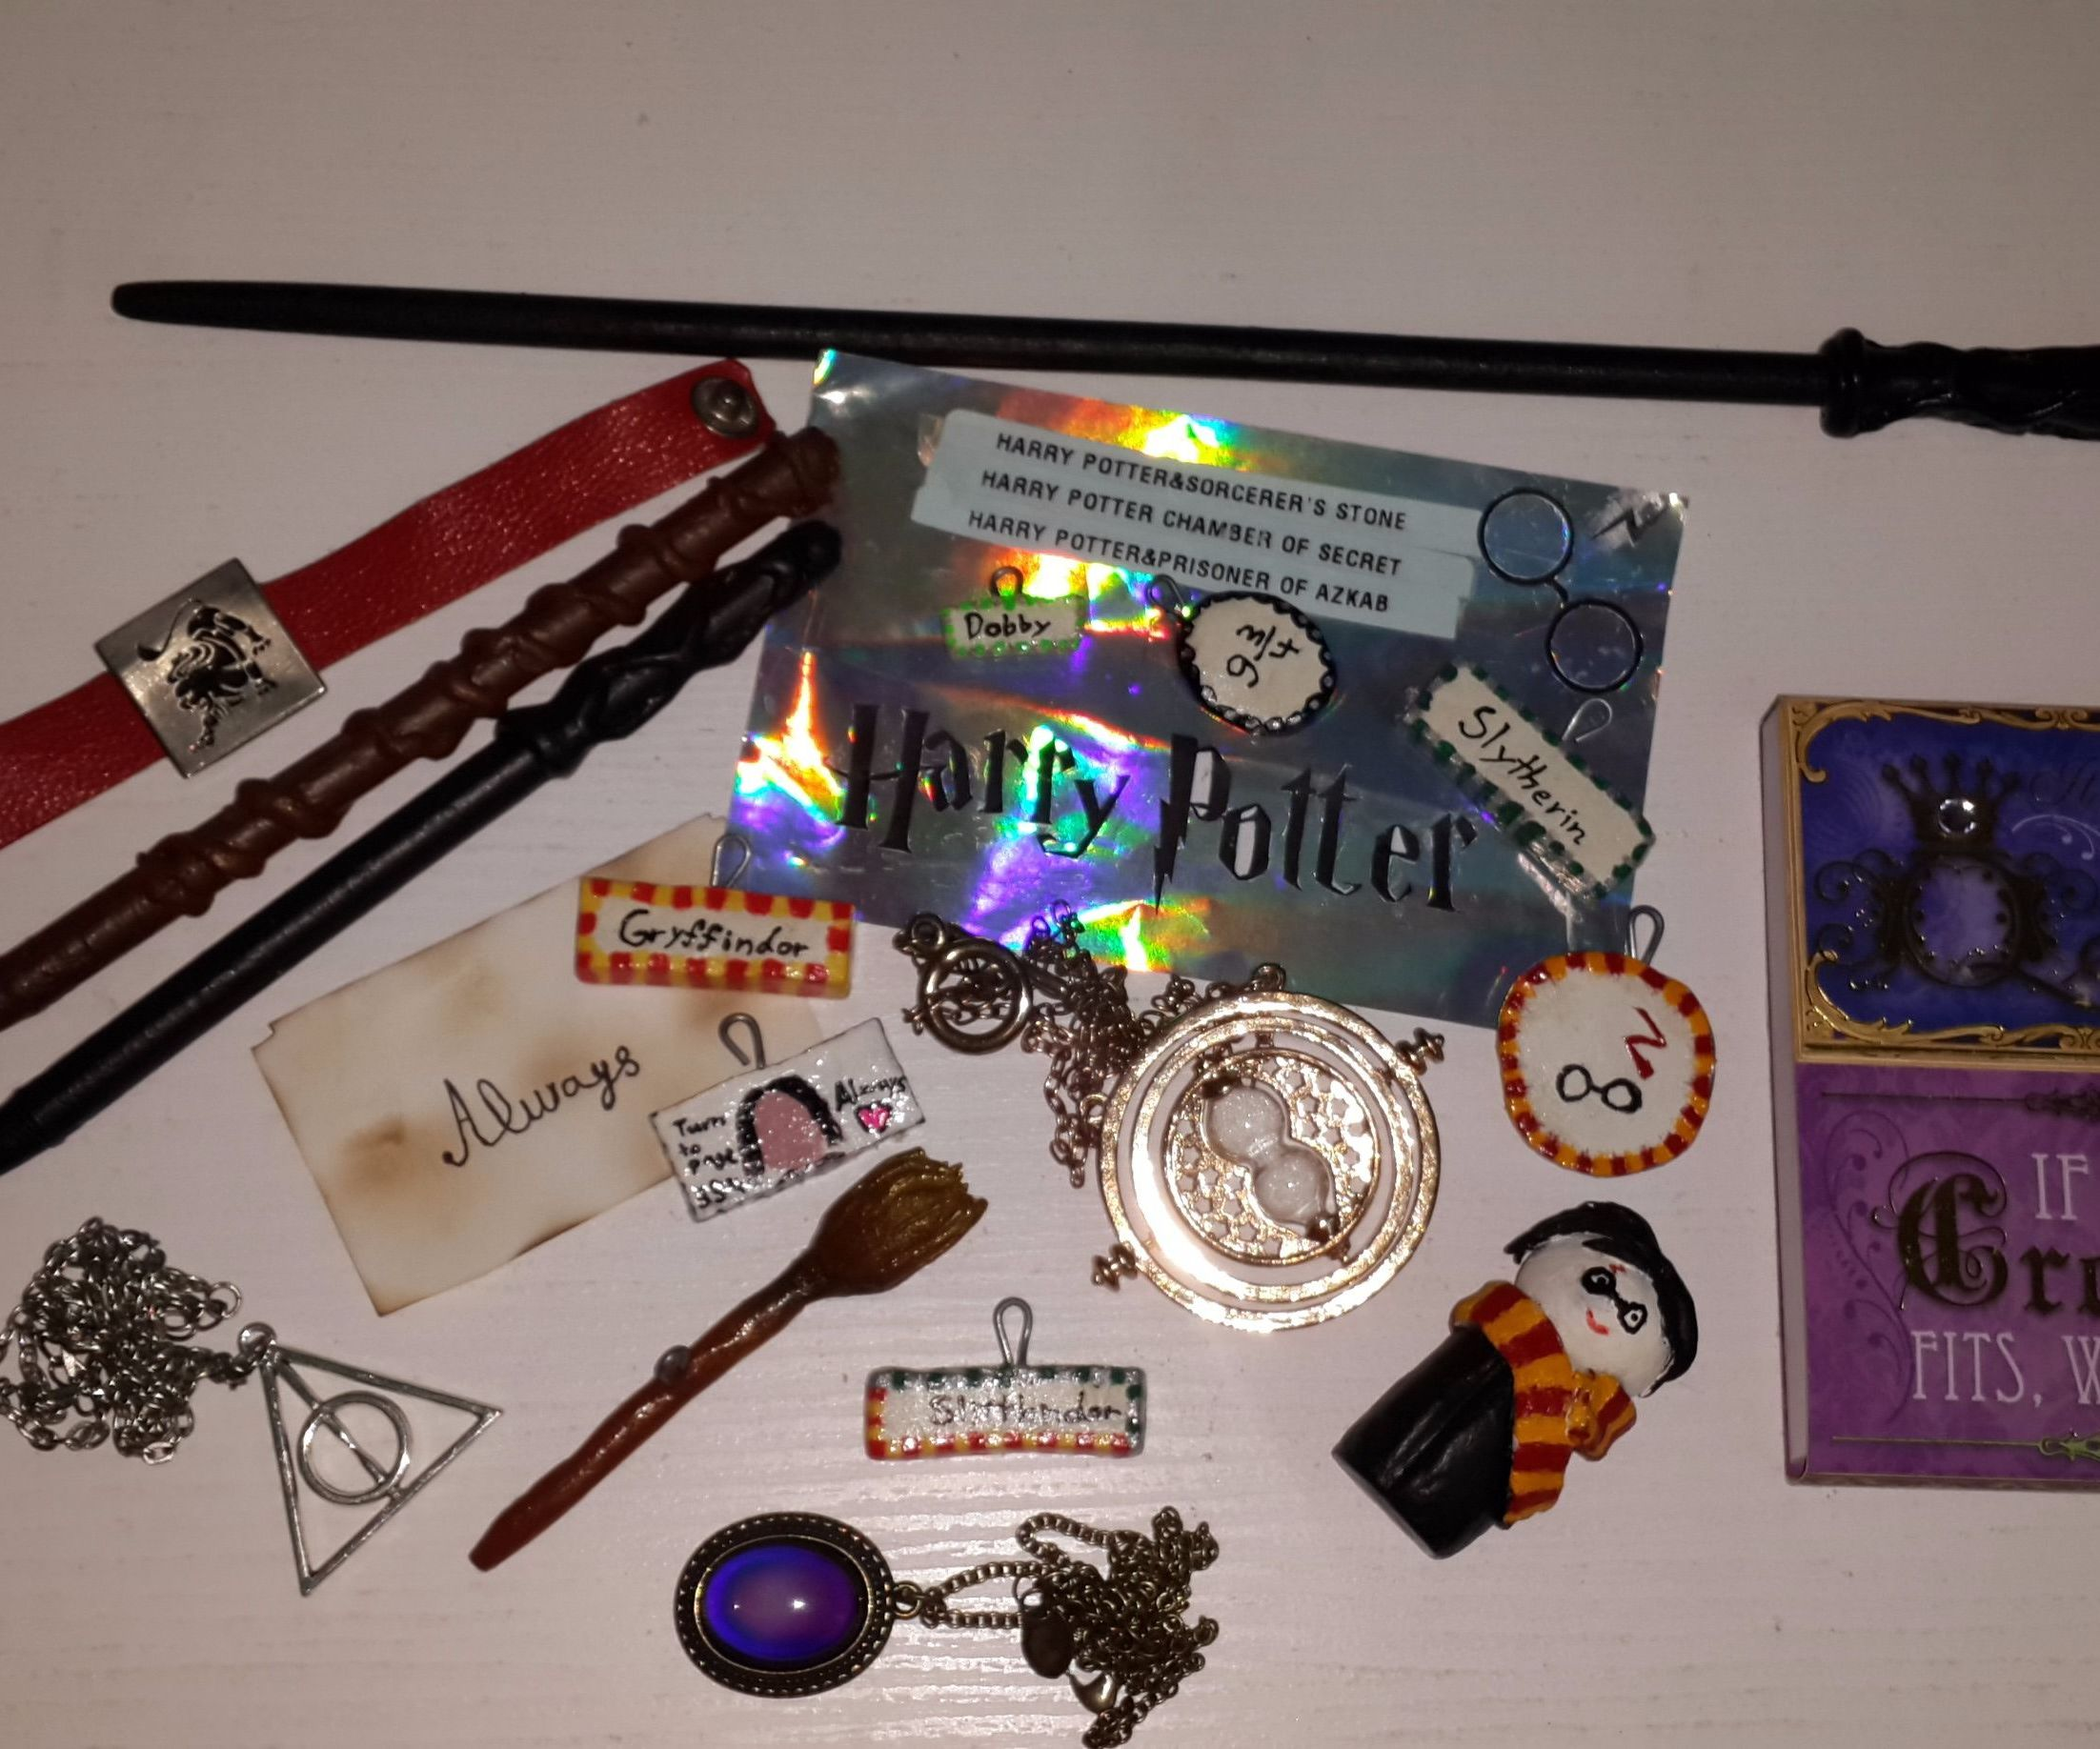 My Harry Potter handmade necklaces, wand pens,Harry Potter statue